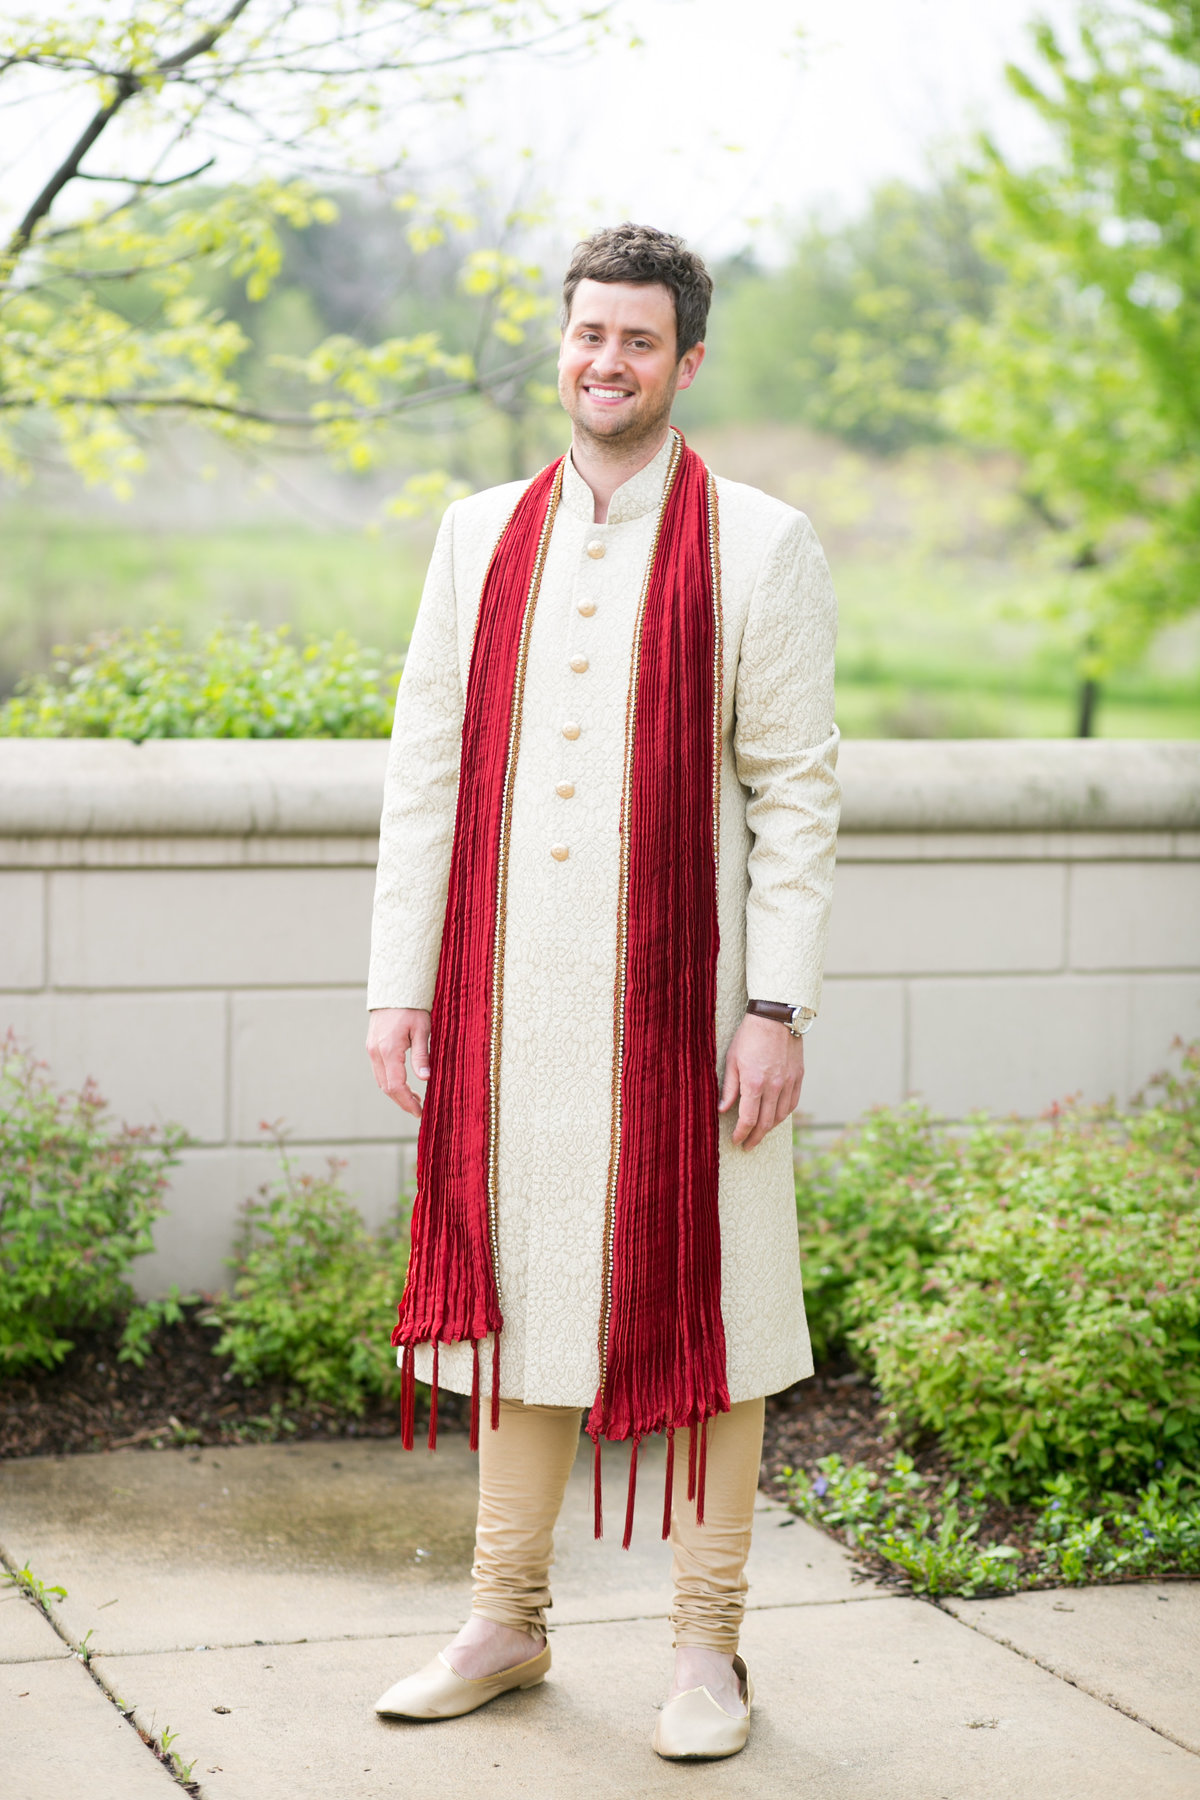 South-Asian-Wedding-Stonegate-Banquet-Center-028